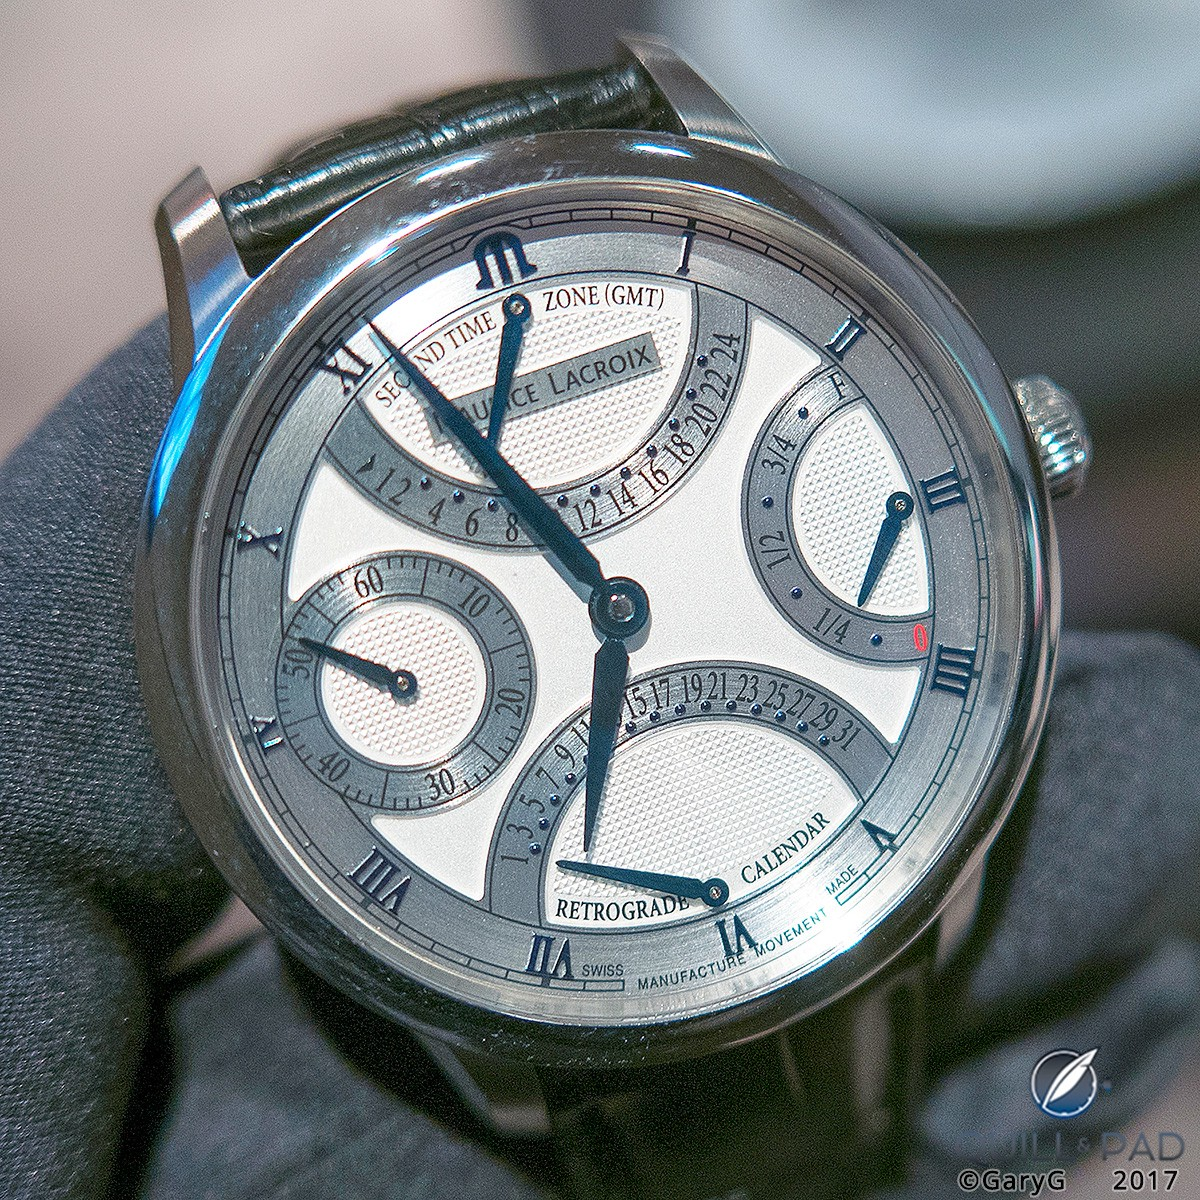 Maurice Lacroix's 2017 Masterpiece Double Retrograde